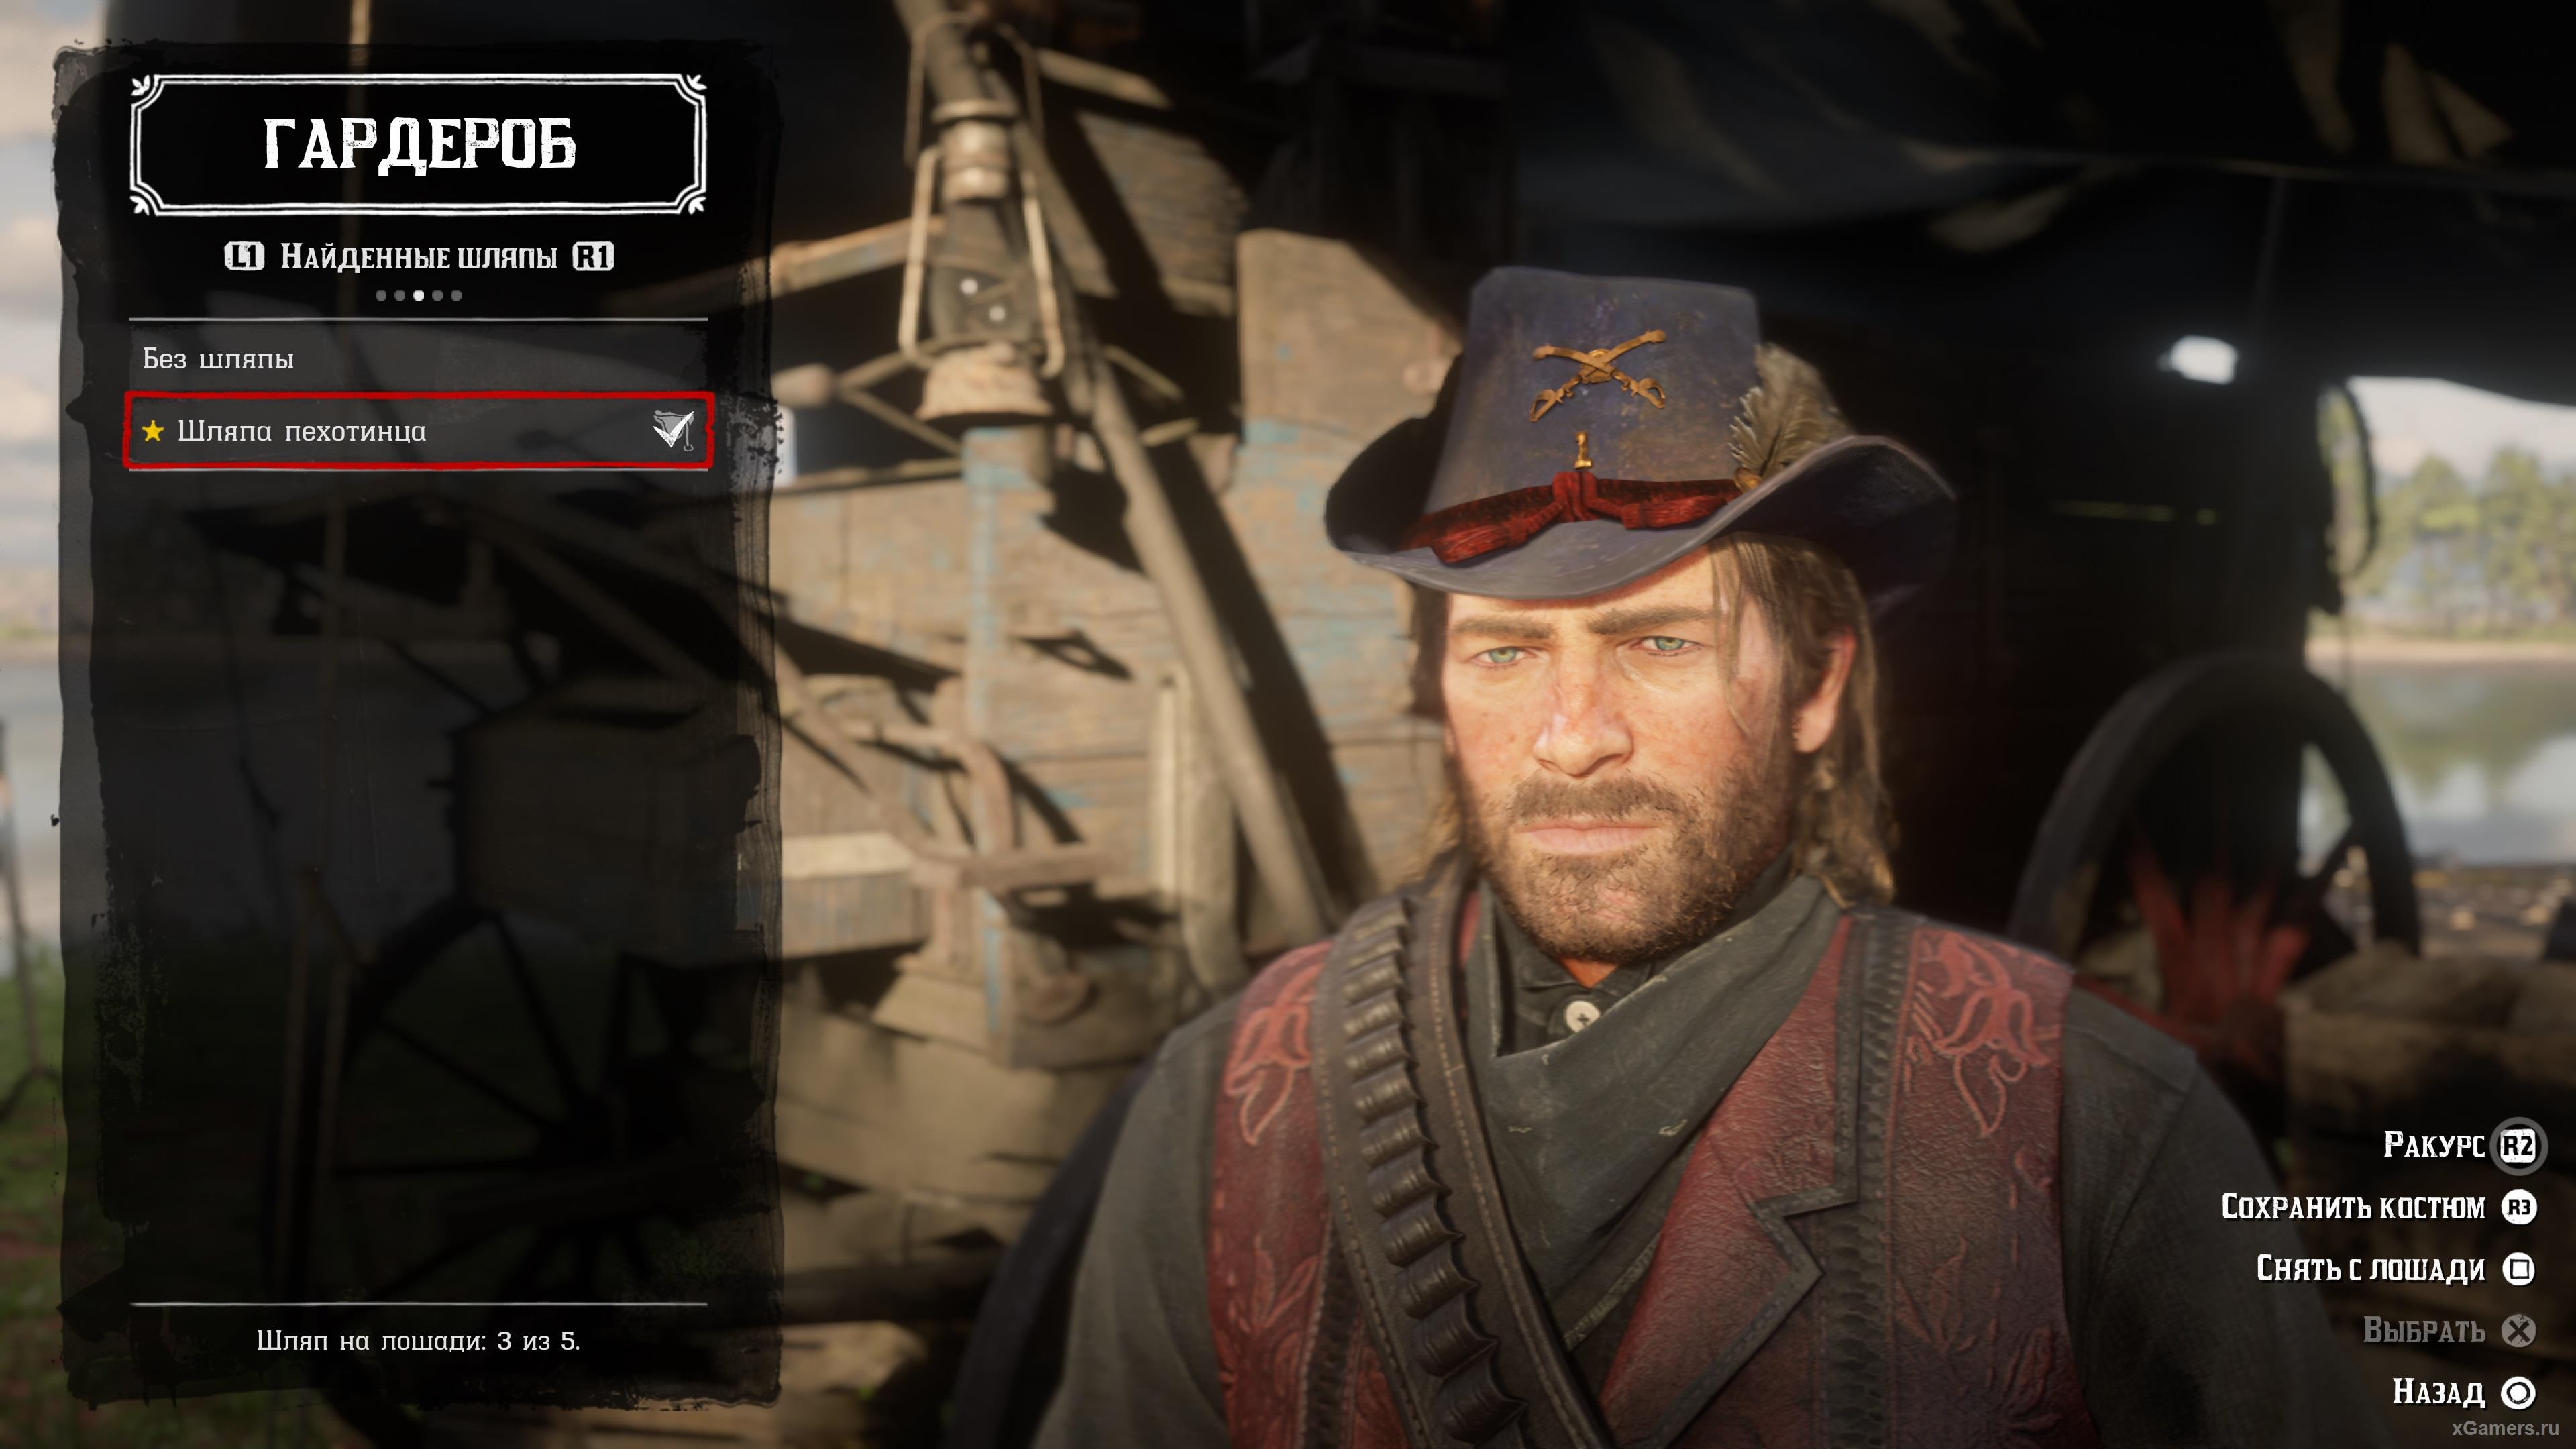 The rare hat of the civil war is in Fort Brennan